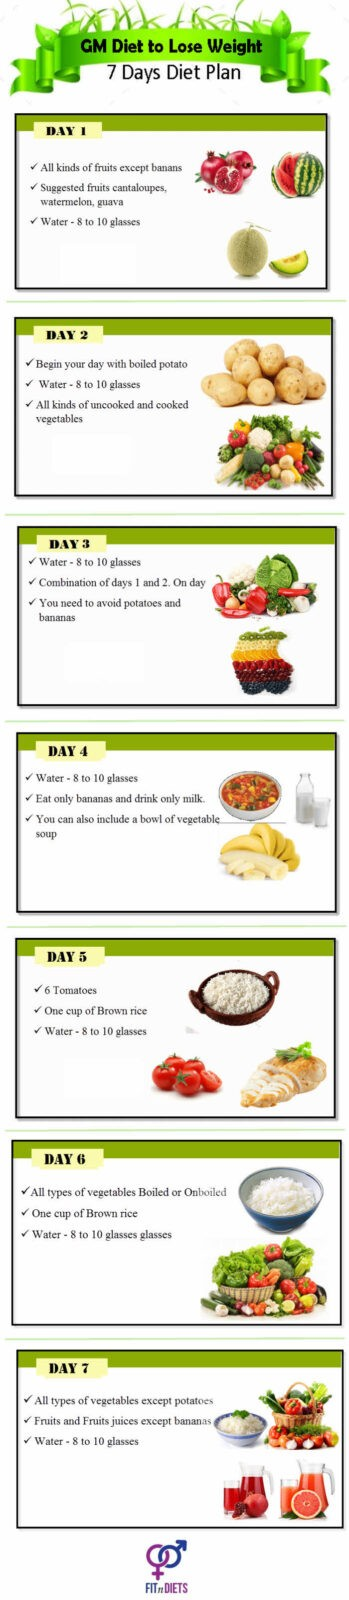 gm-diet-7days-weight-loss-infographic